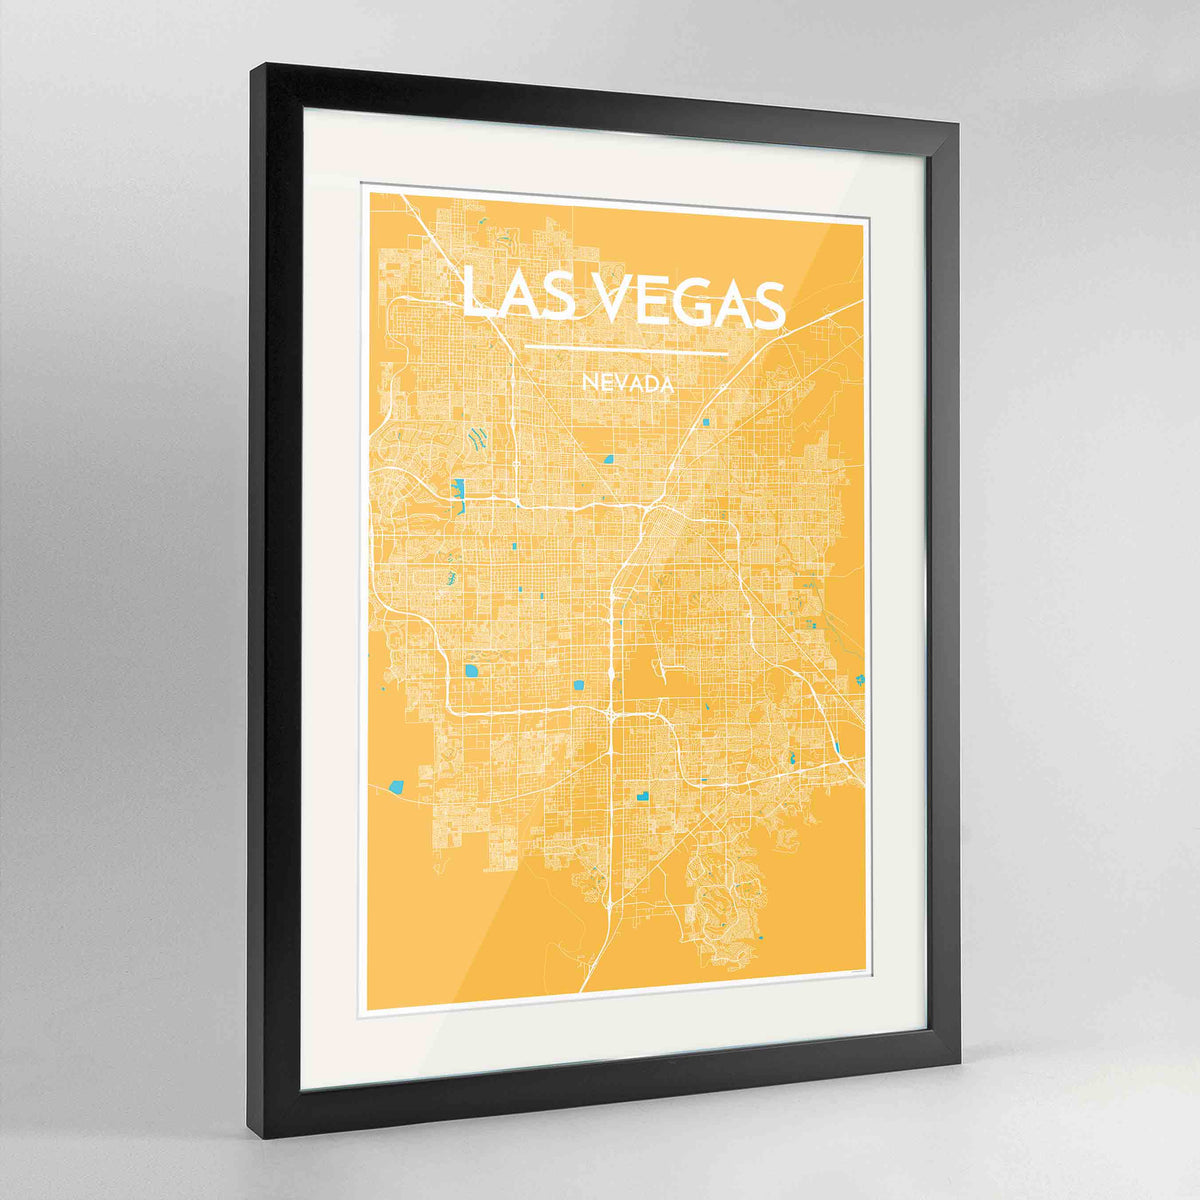 "Framed Las Vegas Map Art Print 24x36"" Contemporary Black frame Point Two Design Group"